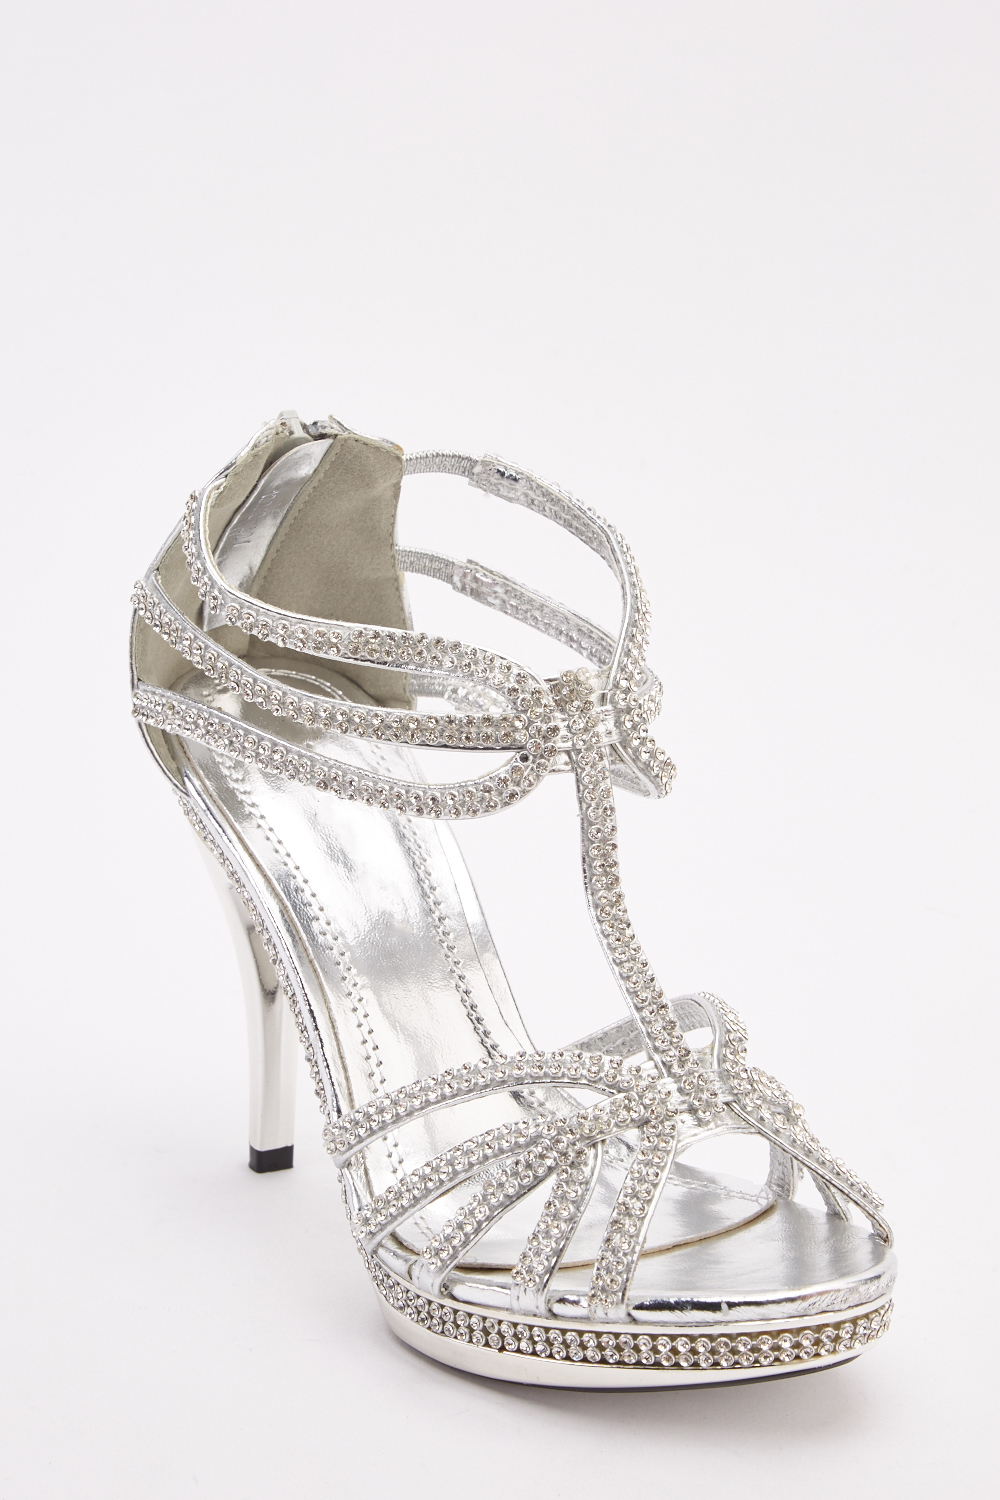 52e50d616e3 Encrusted T-Strap Heeled Sandals - Just £5